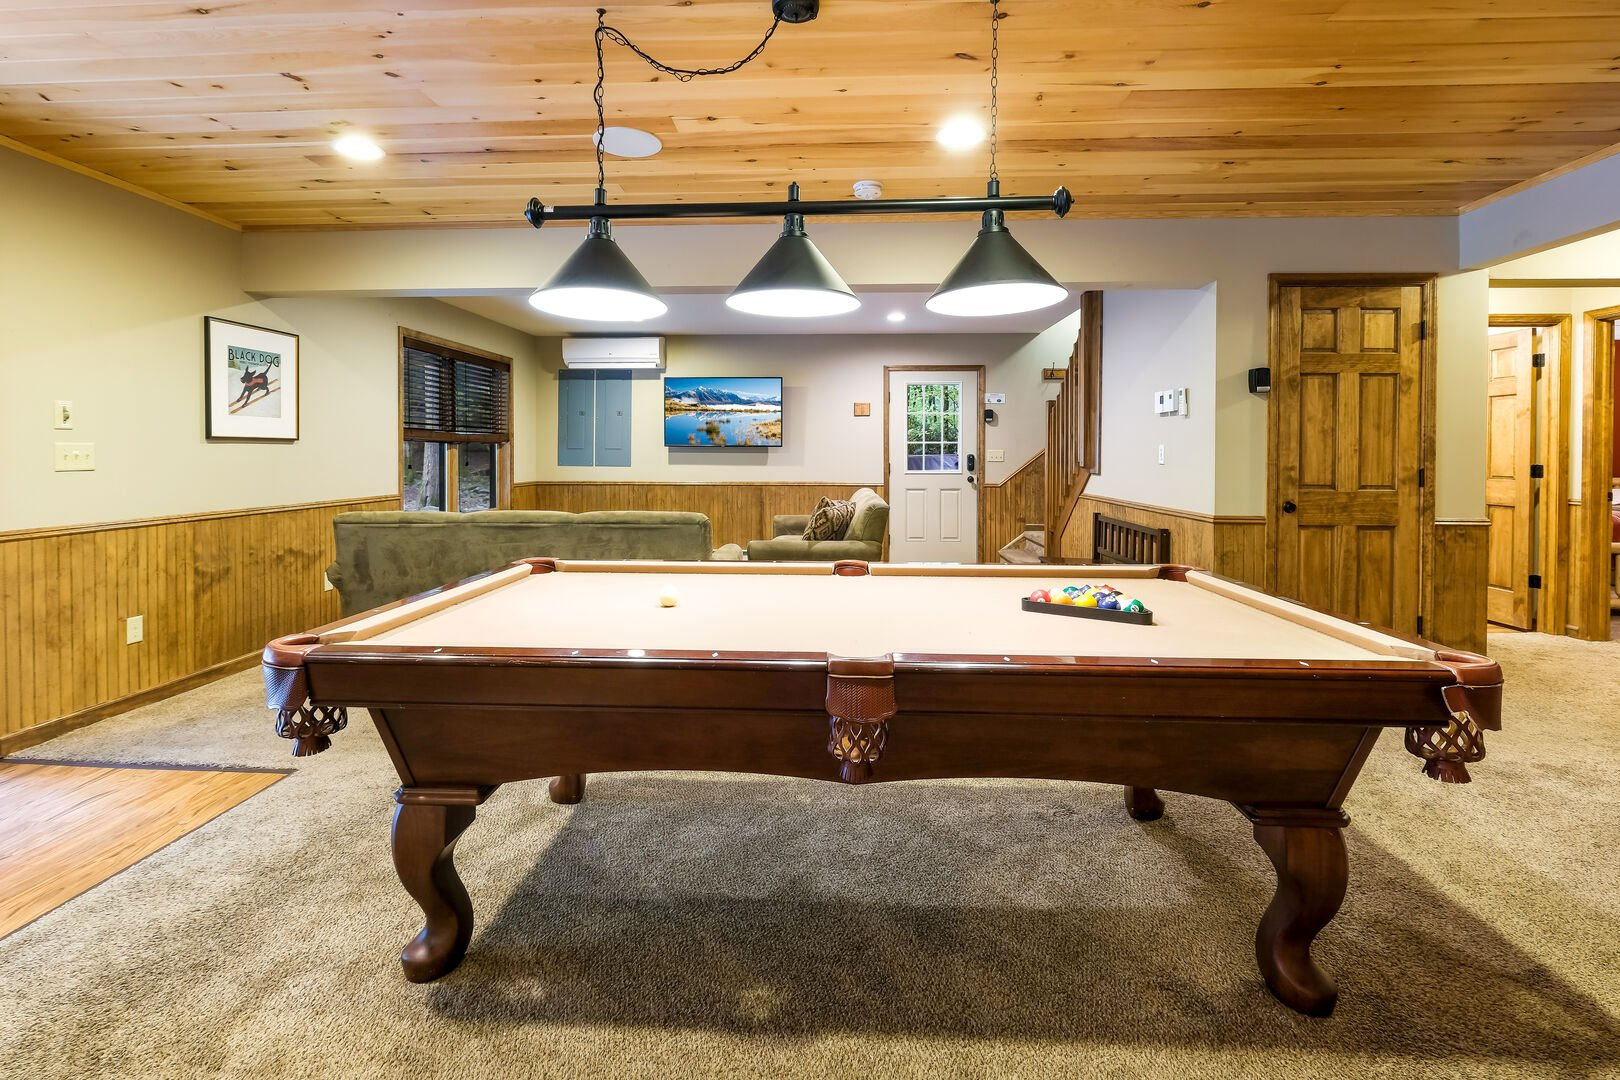 Pool table in the game room of this luxurious Poconos vacation rental.